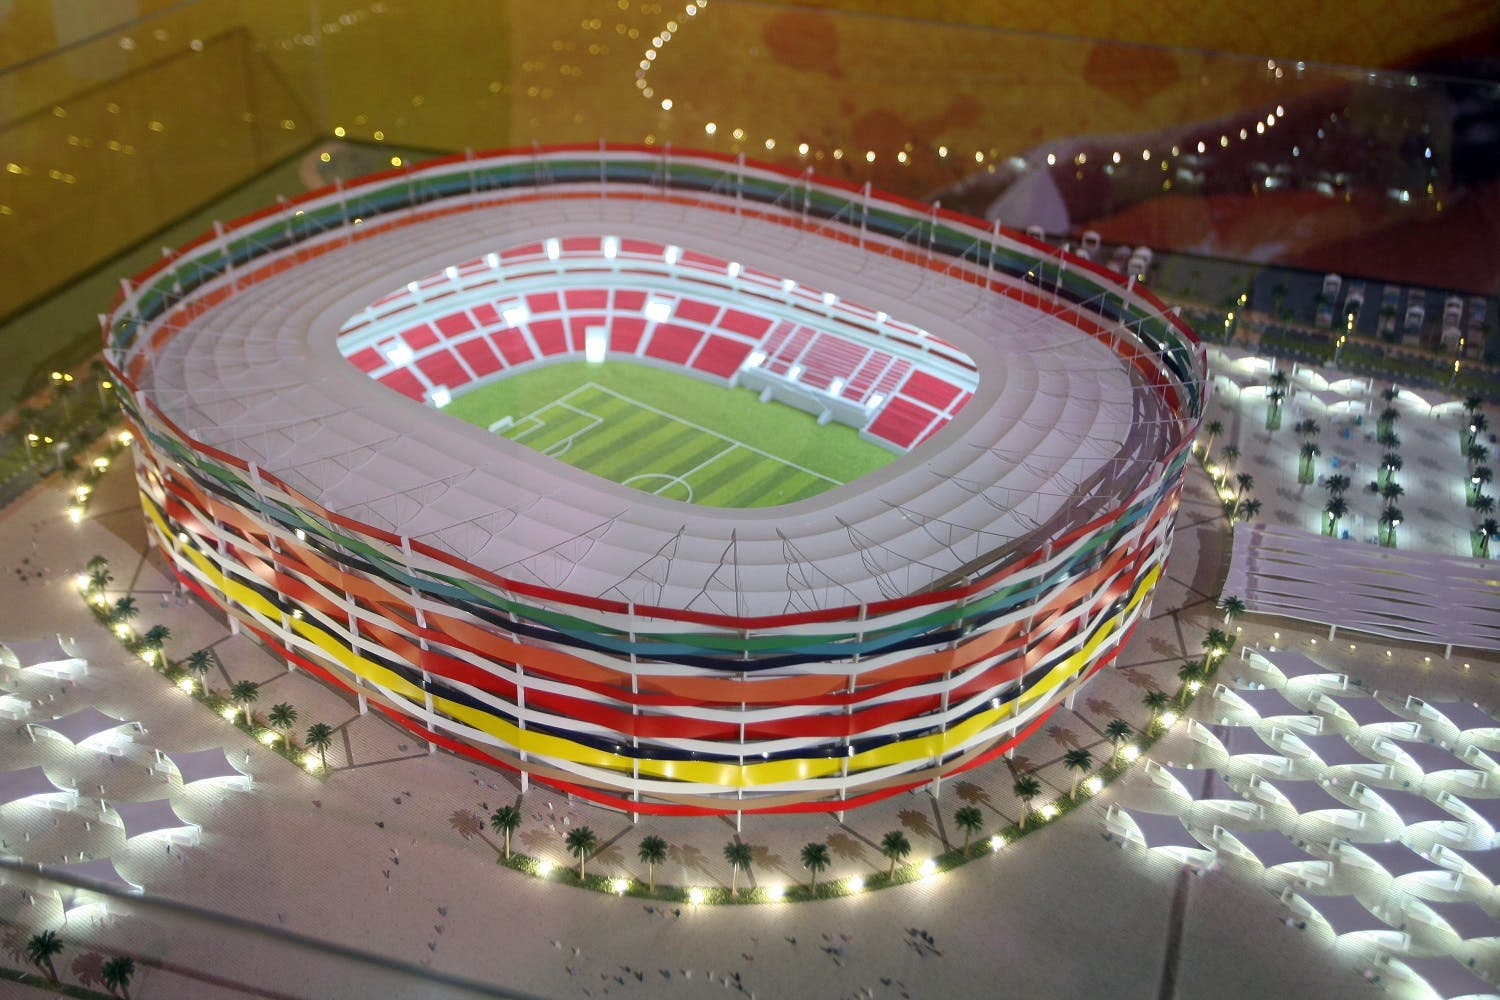 Qatar presents a model of its Al-Gharafa stadium as it bids to host the FIFA 2022 World Cup during the FIFA Inspection Tour for the country's bid, in Doha September 16, 2010 (AP Photo/Osama Faisal)